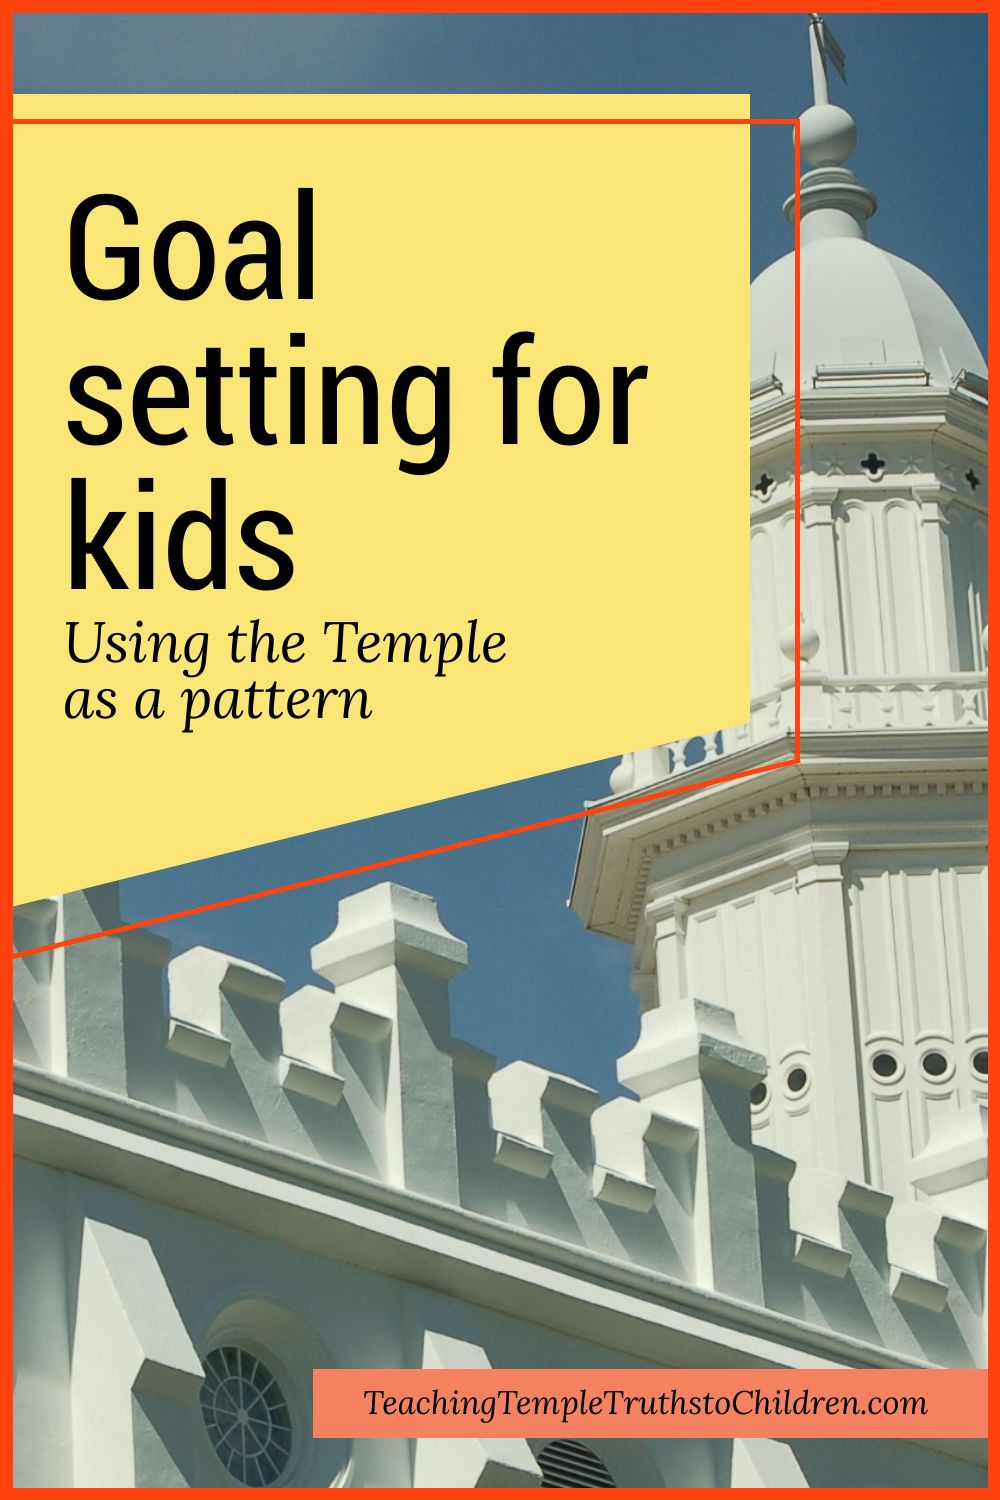 Teach kids goal setting with the Temple